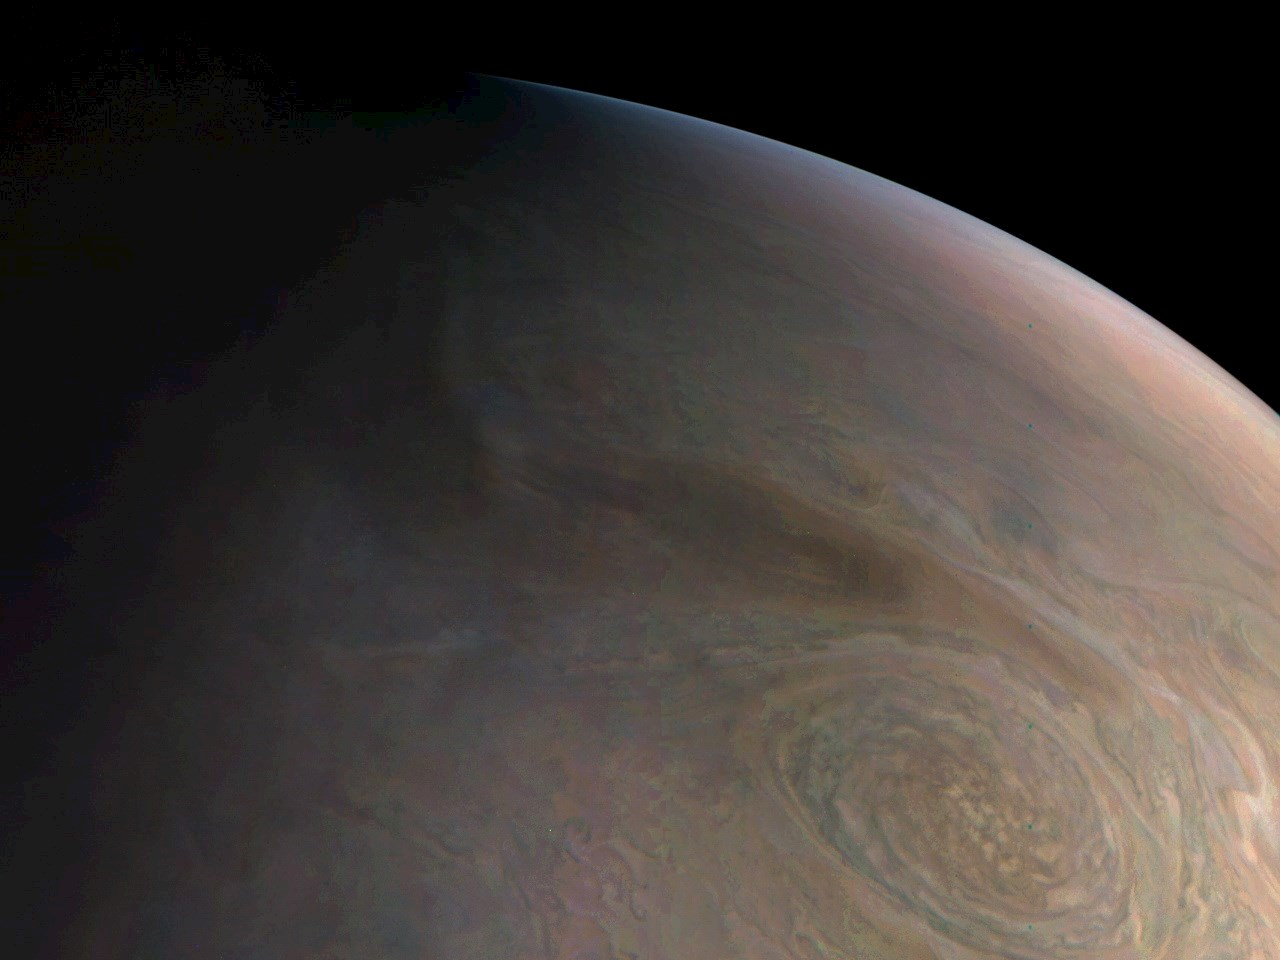 Juno's close look at Jupiter's little red spot (part 2)